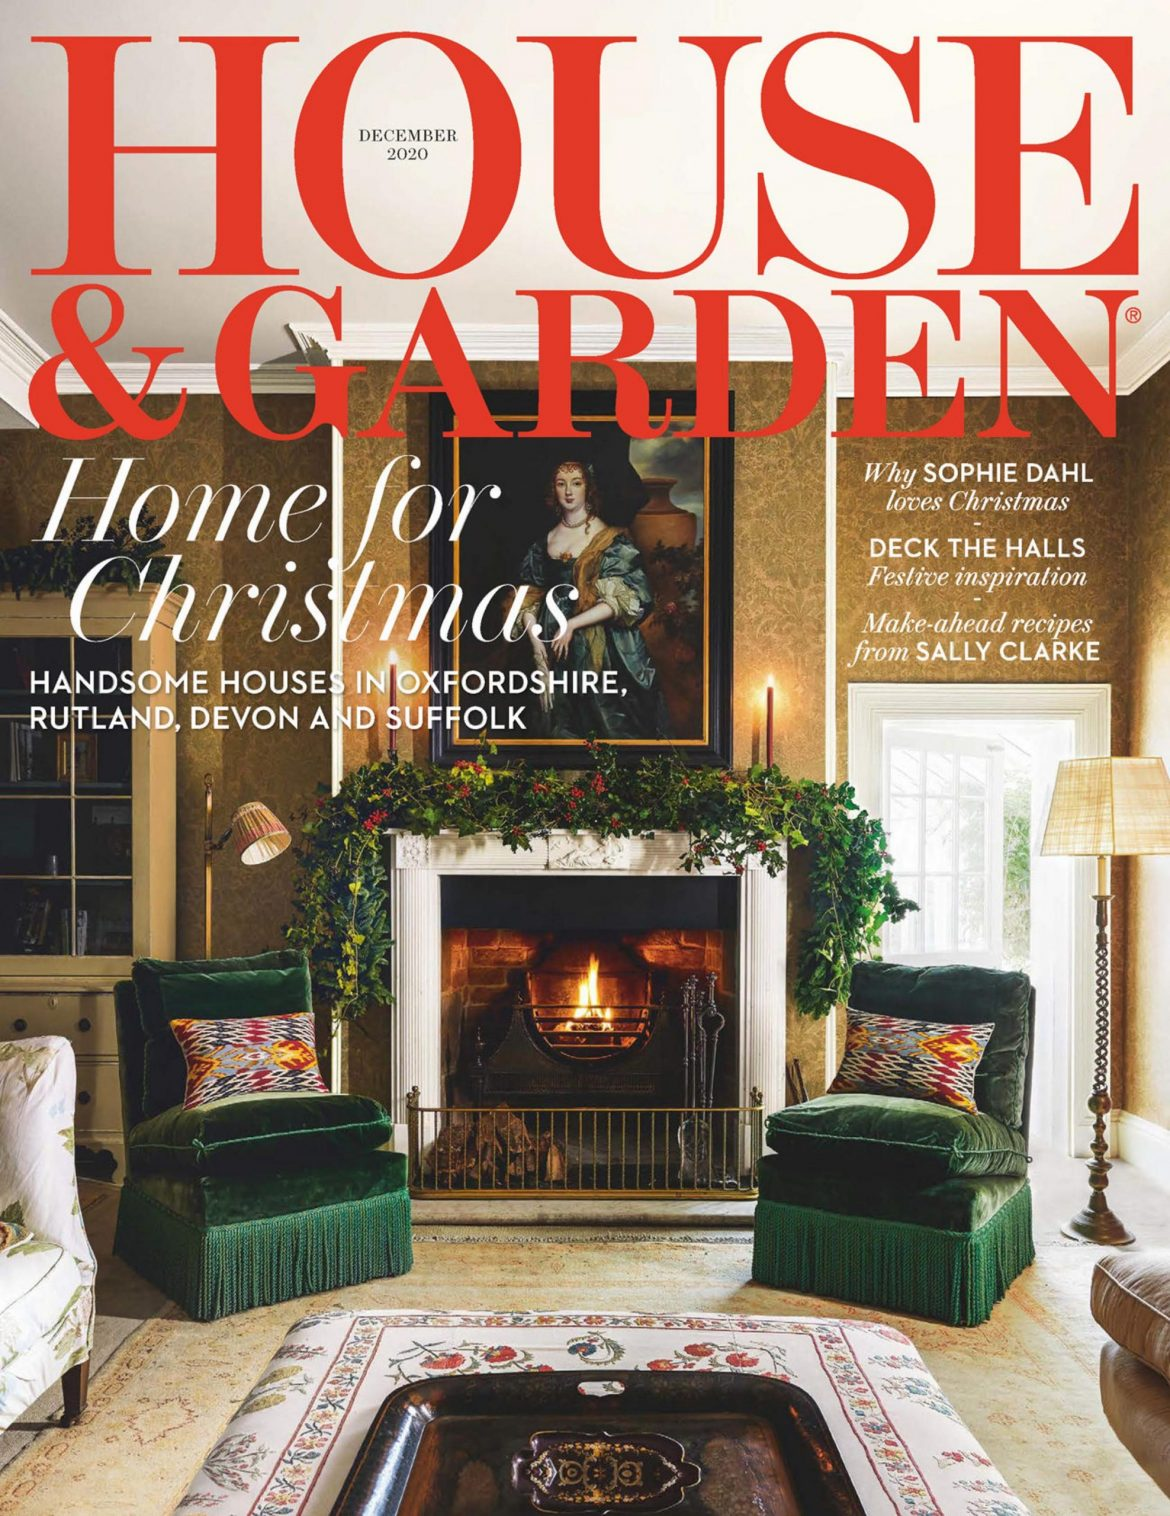 christmas inspired magazines covers The Best Christmas Inspired Magazines Covers the best christmas inspired magazines covers 2